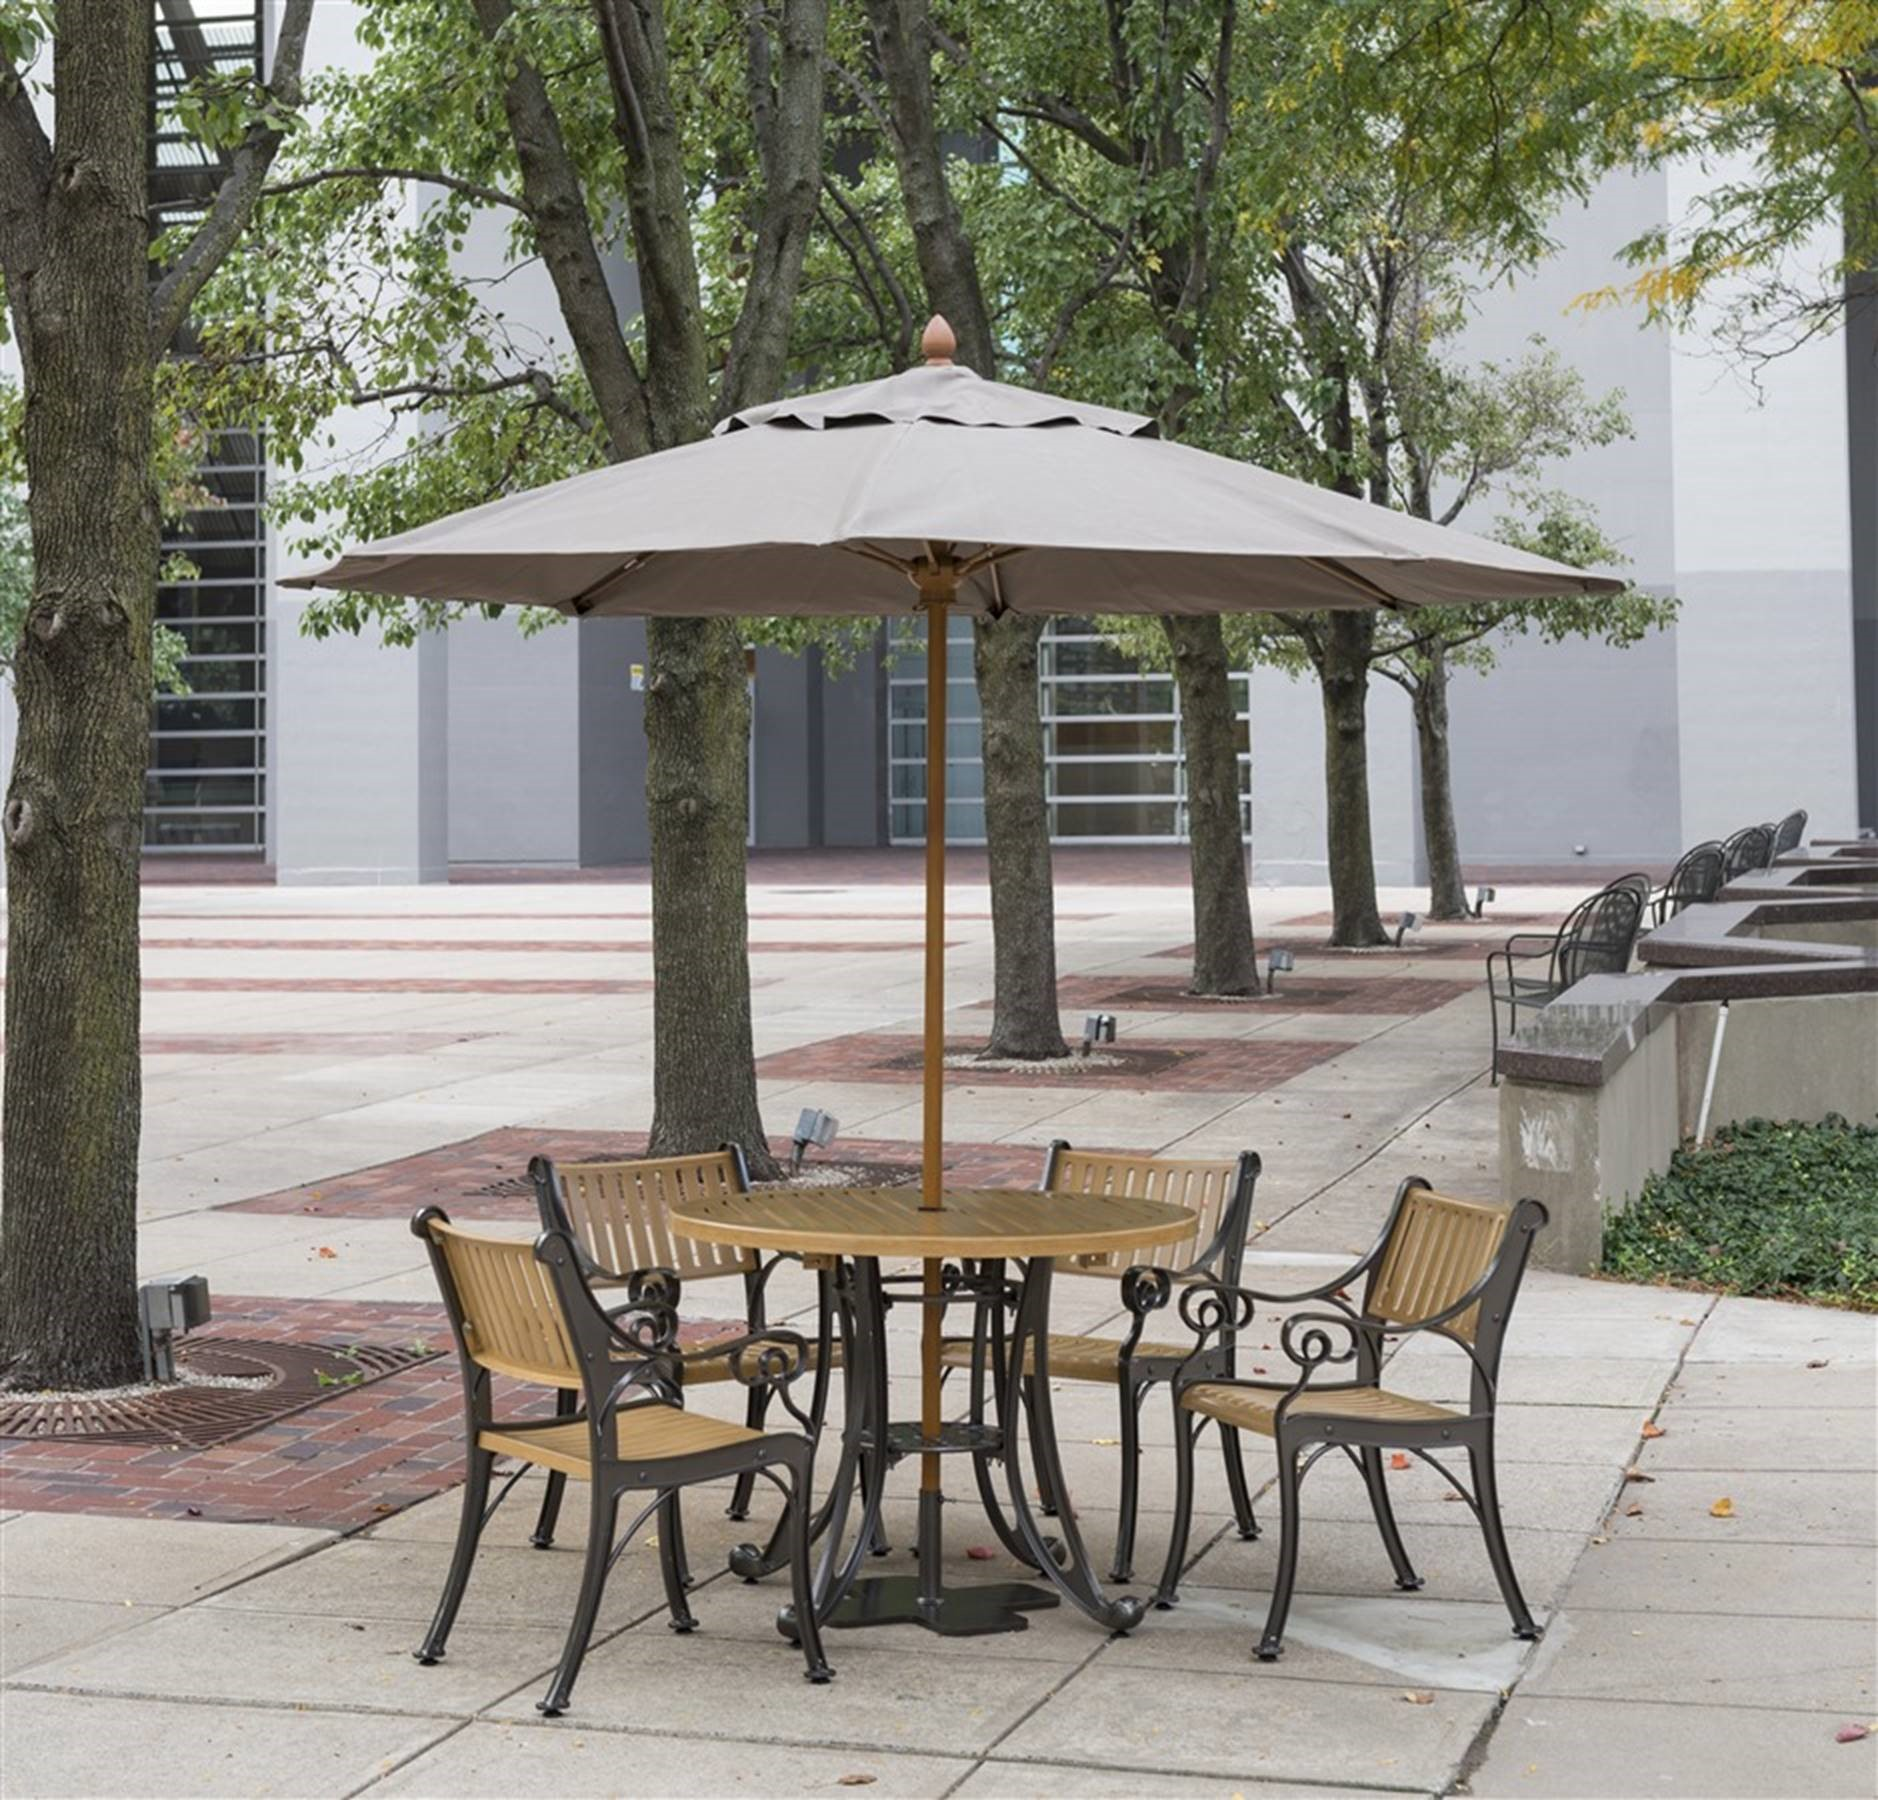 ... Chairs And Site Furnishings Made Here In The USA. With 3 Distinct  Brands  Wabash Valley Plastisol Coated Urbanscape Powder Coated Aluminum,  ...